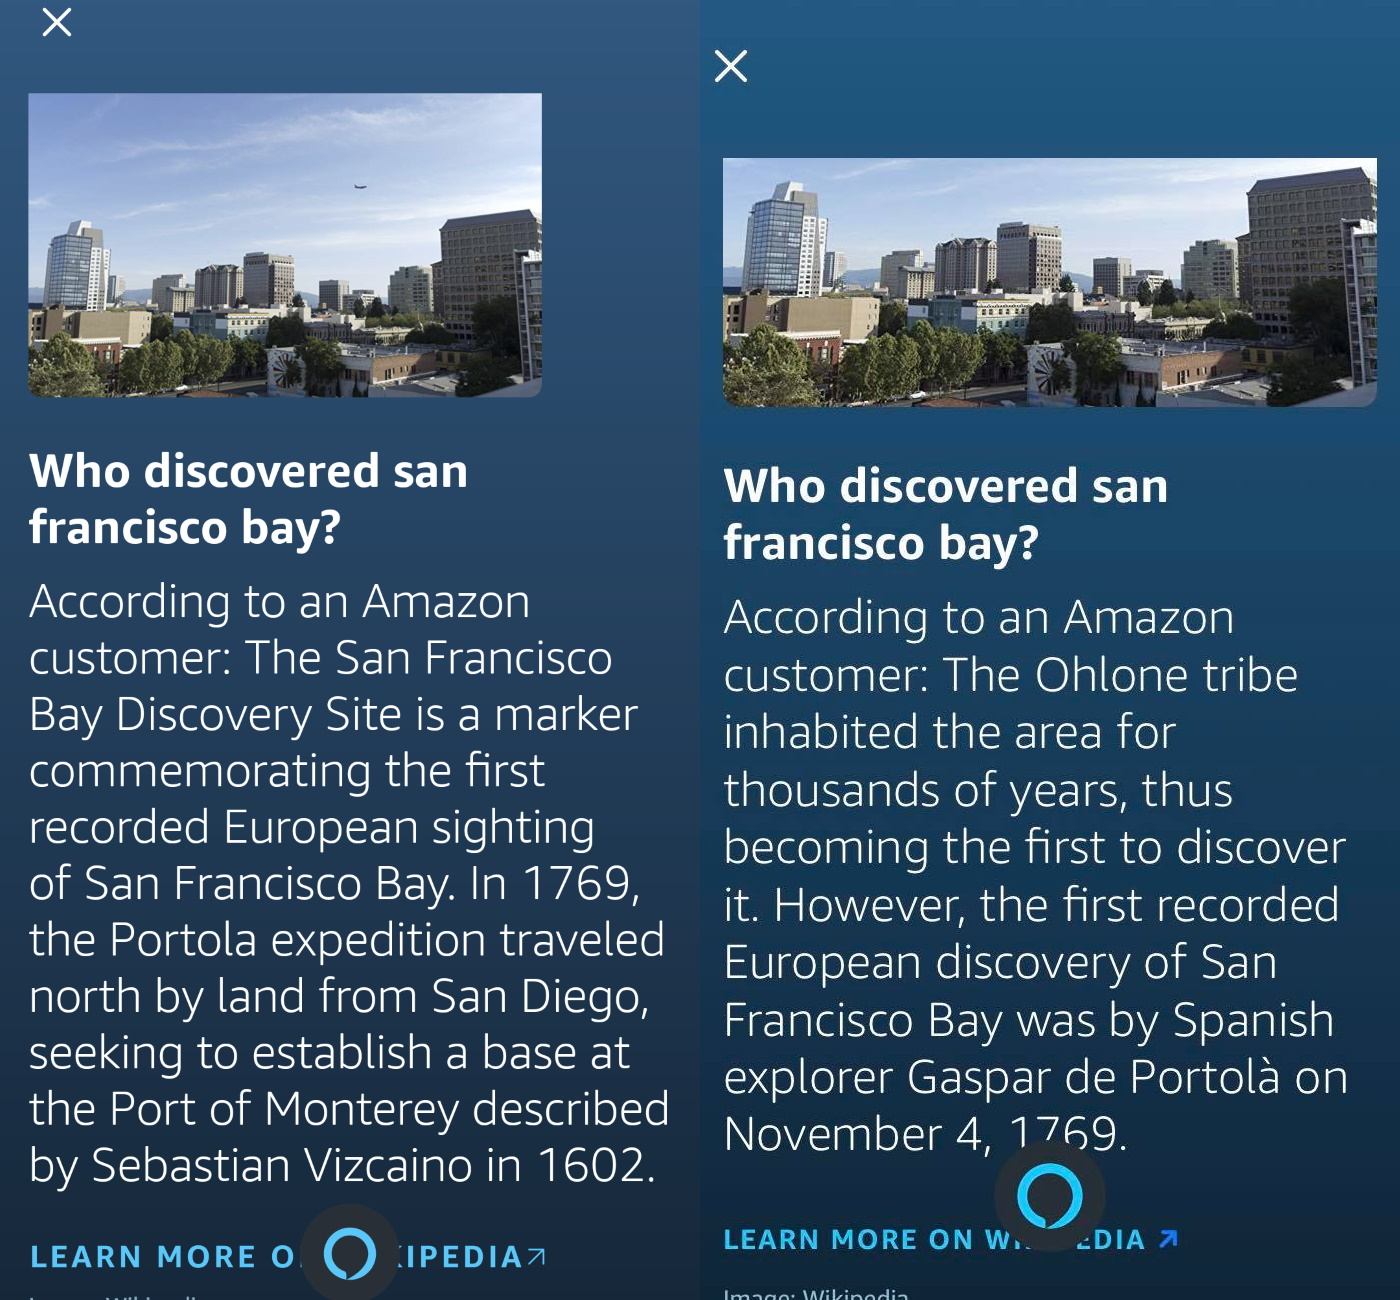 Amazon Alexa answering who discovered San Francisco Bay